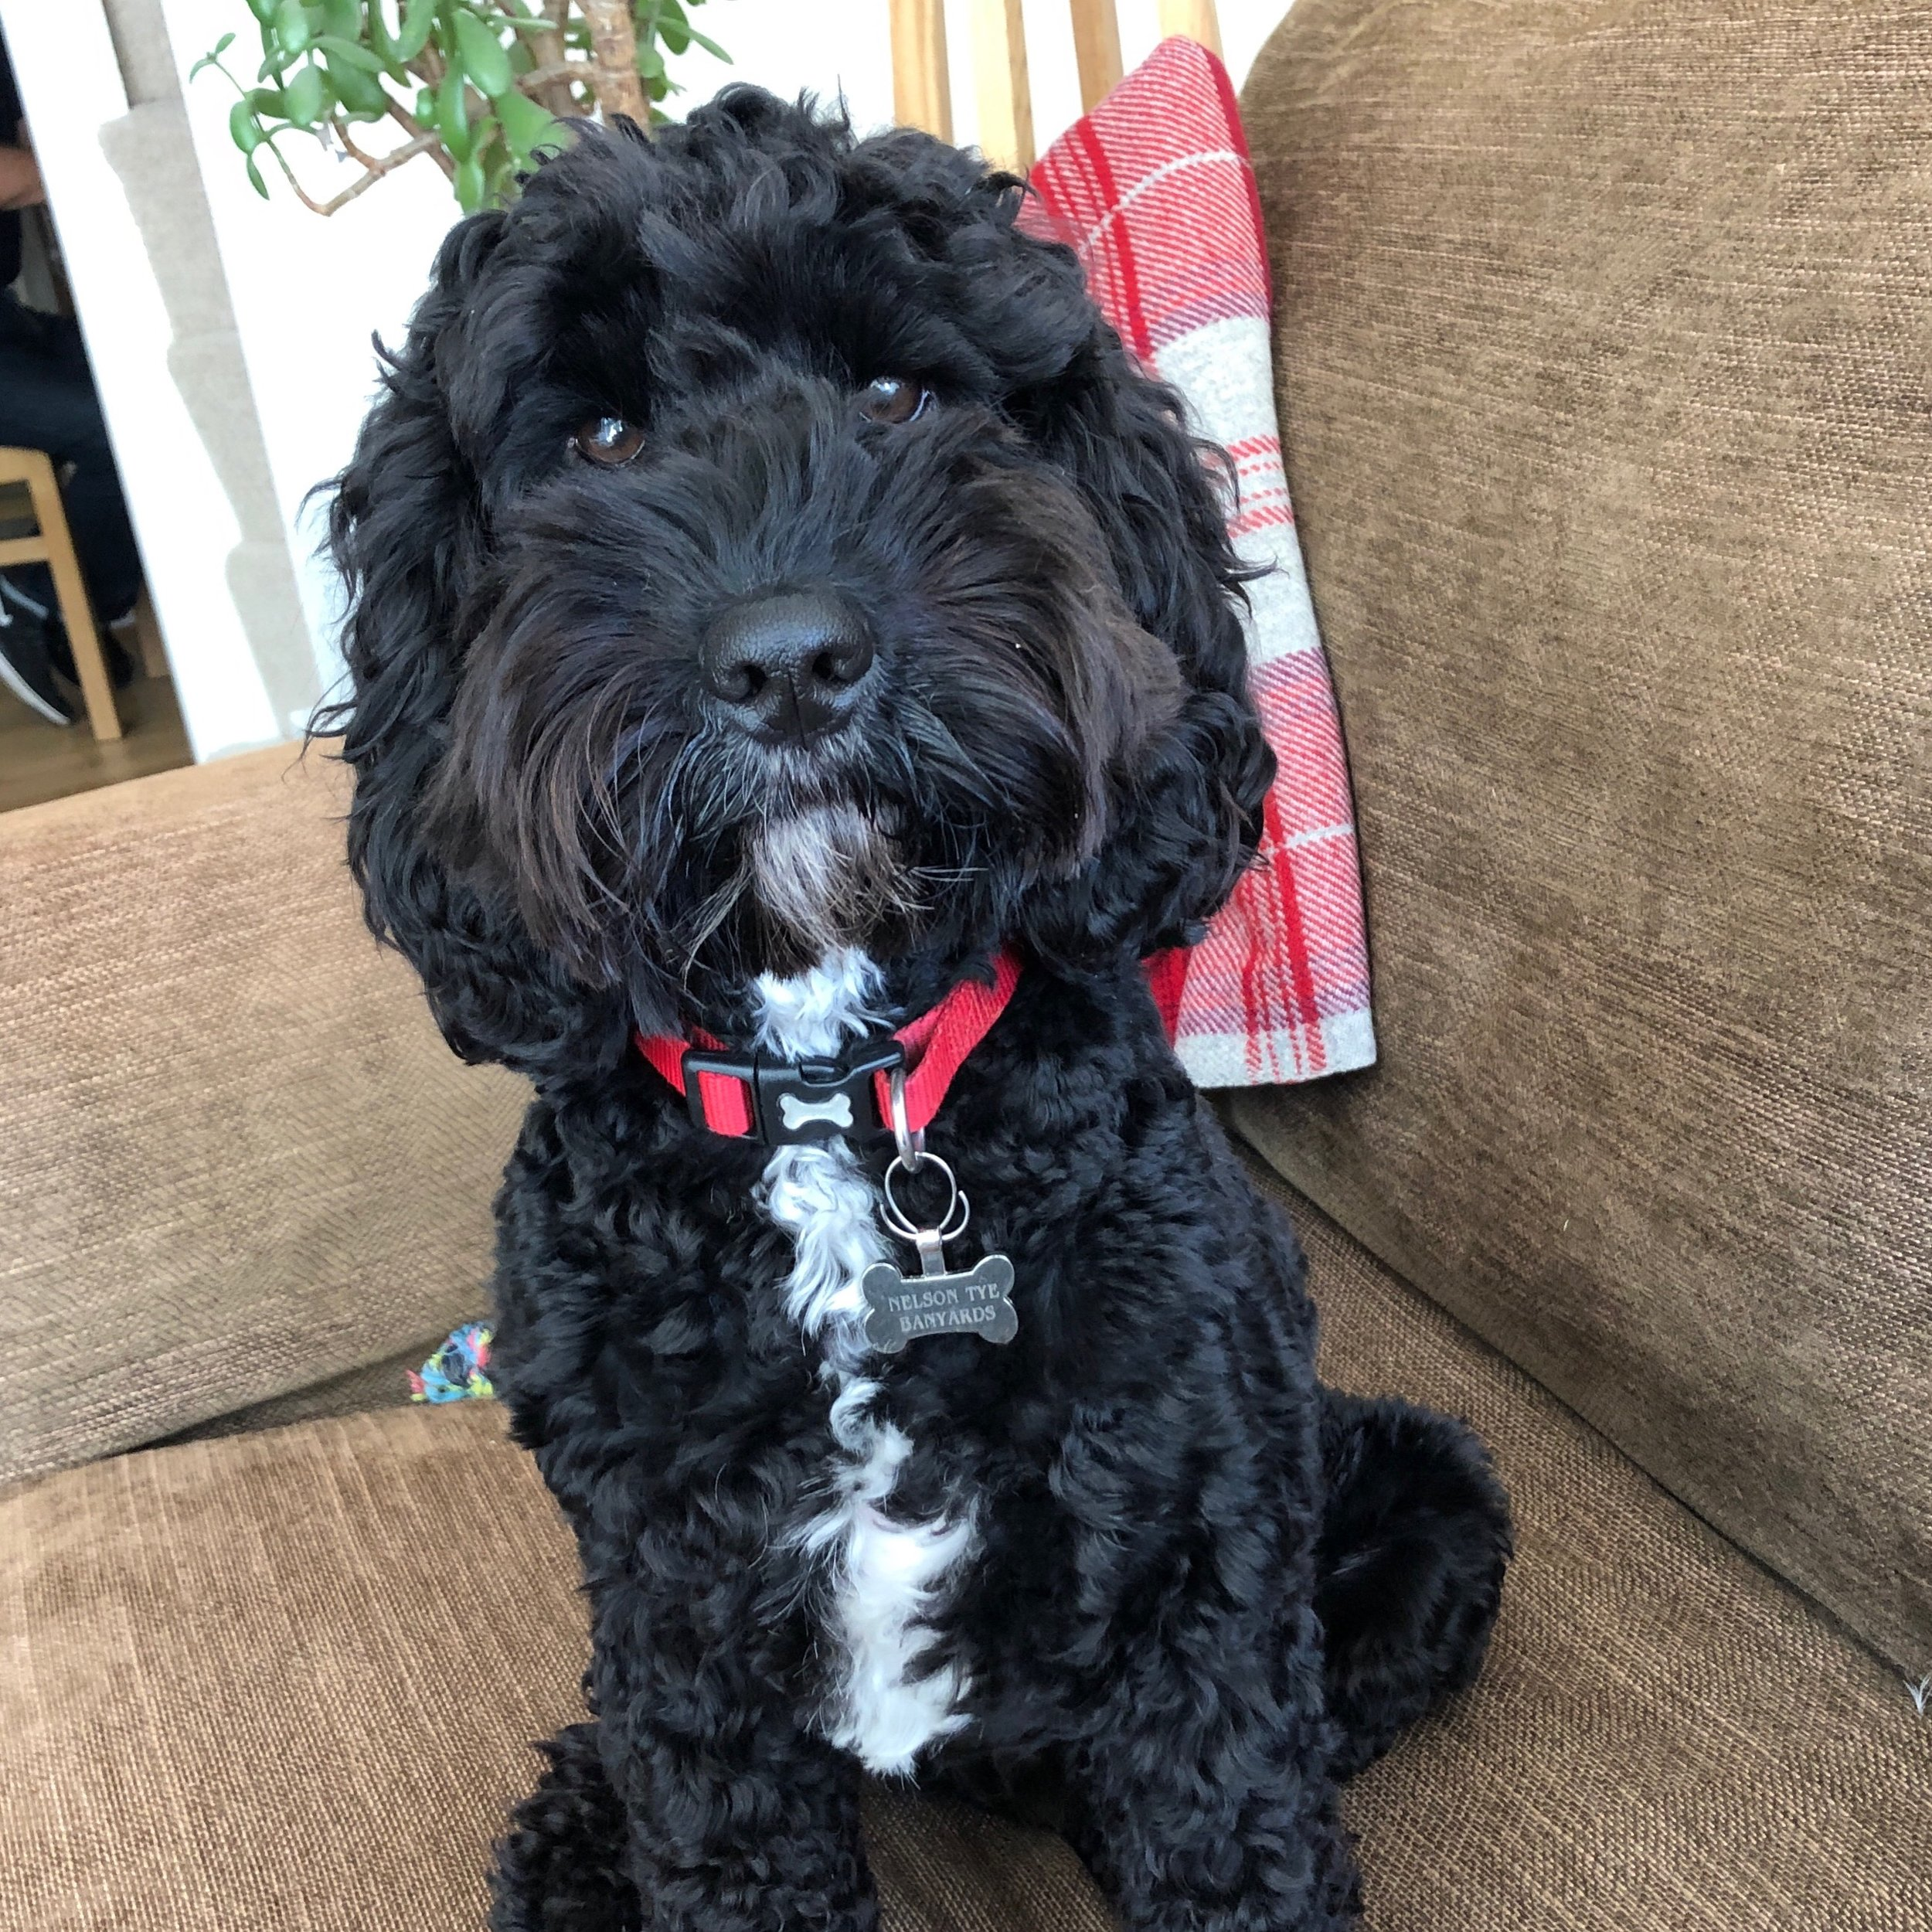 Sitting for Nelson the Cockapoo in Cambridge, England from June 2019 for 10 days -